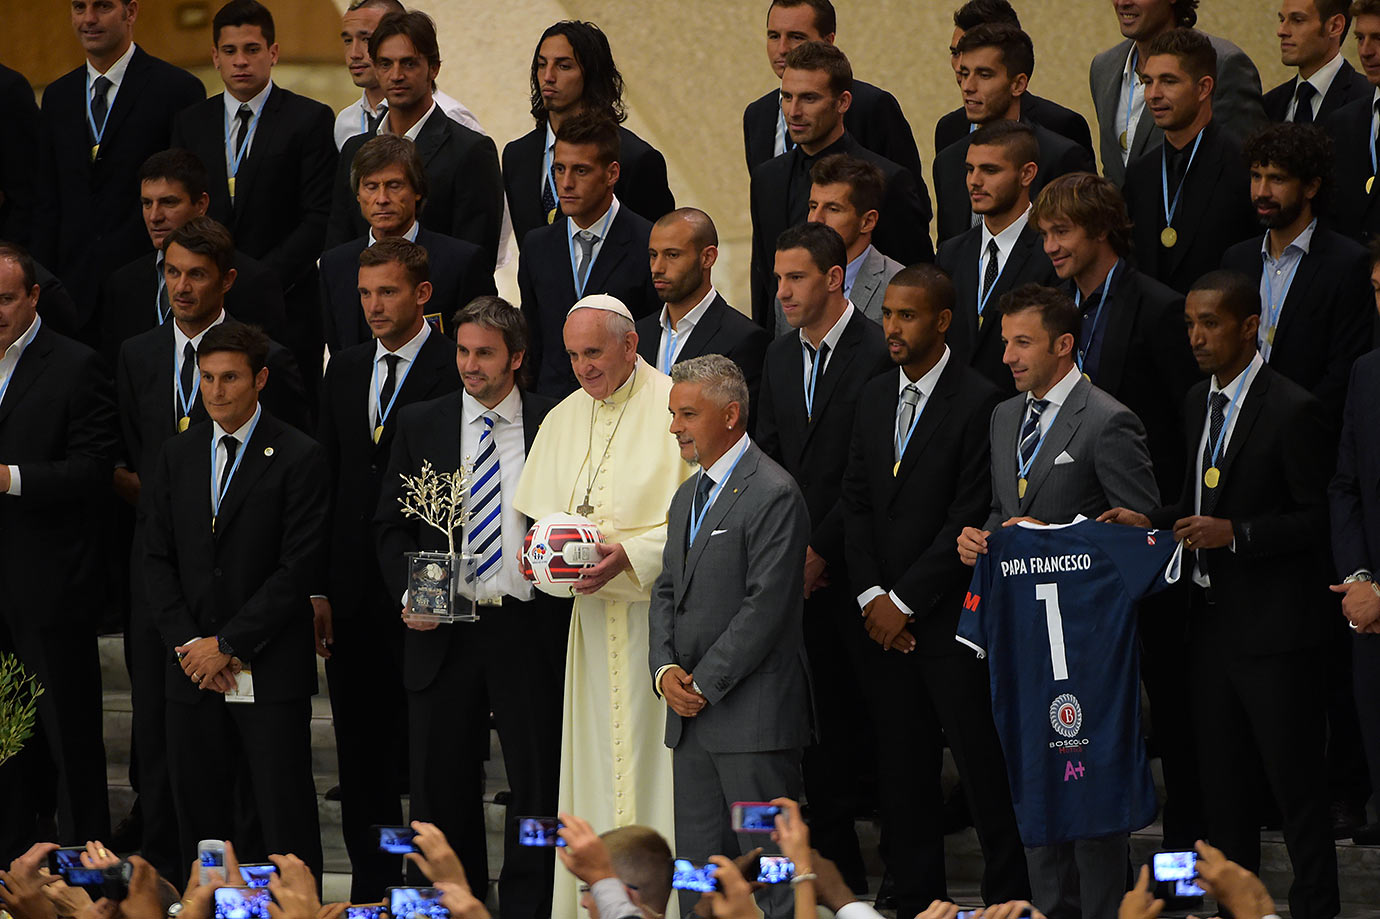 Pope Francis takes a group photo with the players of the 'Partita Interreligiosa Della Pace' at Paul VI Hall on September 1, 2014 in Vatican City.